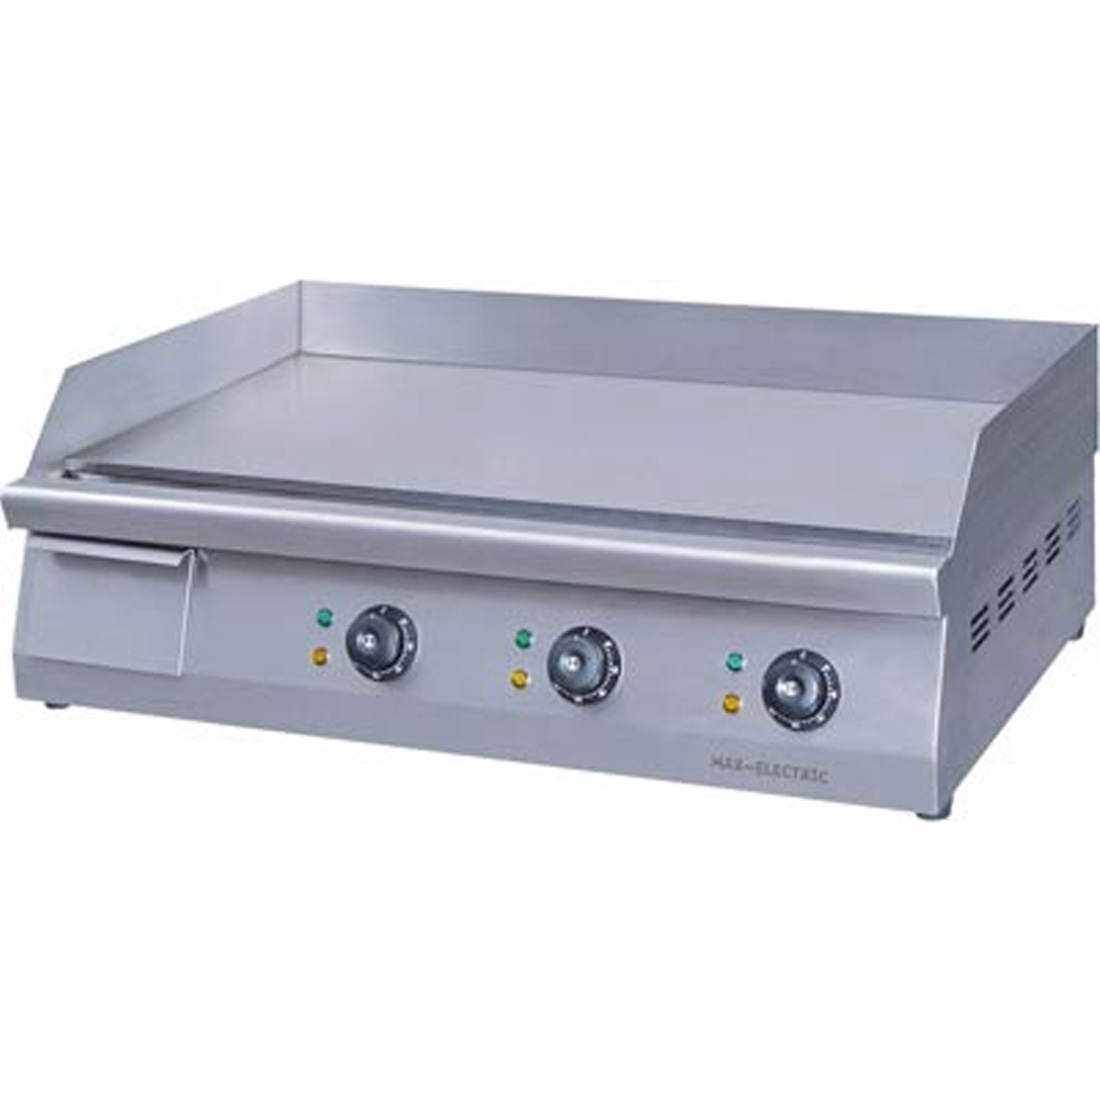 GH-760E MAX~ELECTRIC Griddle